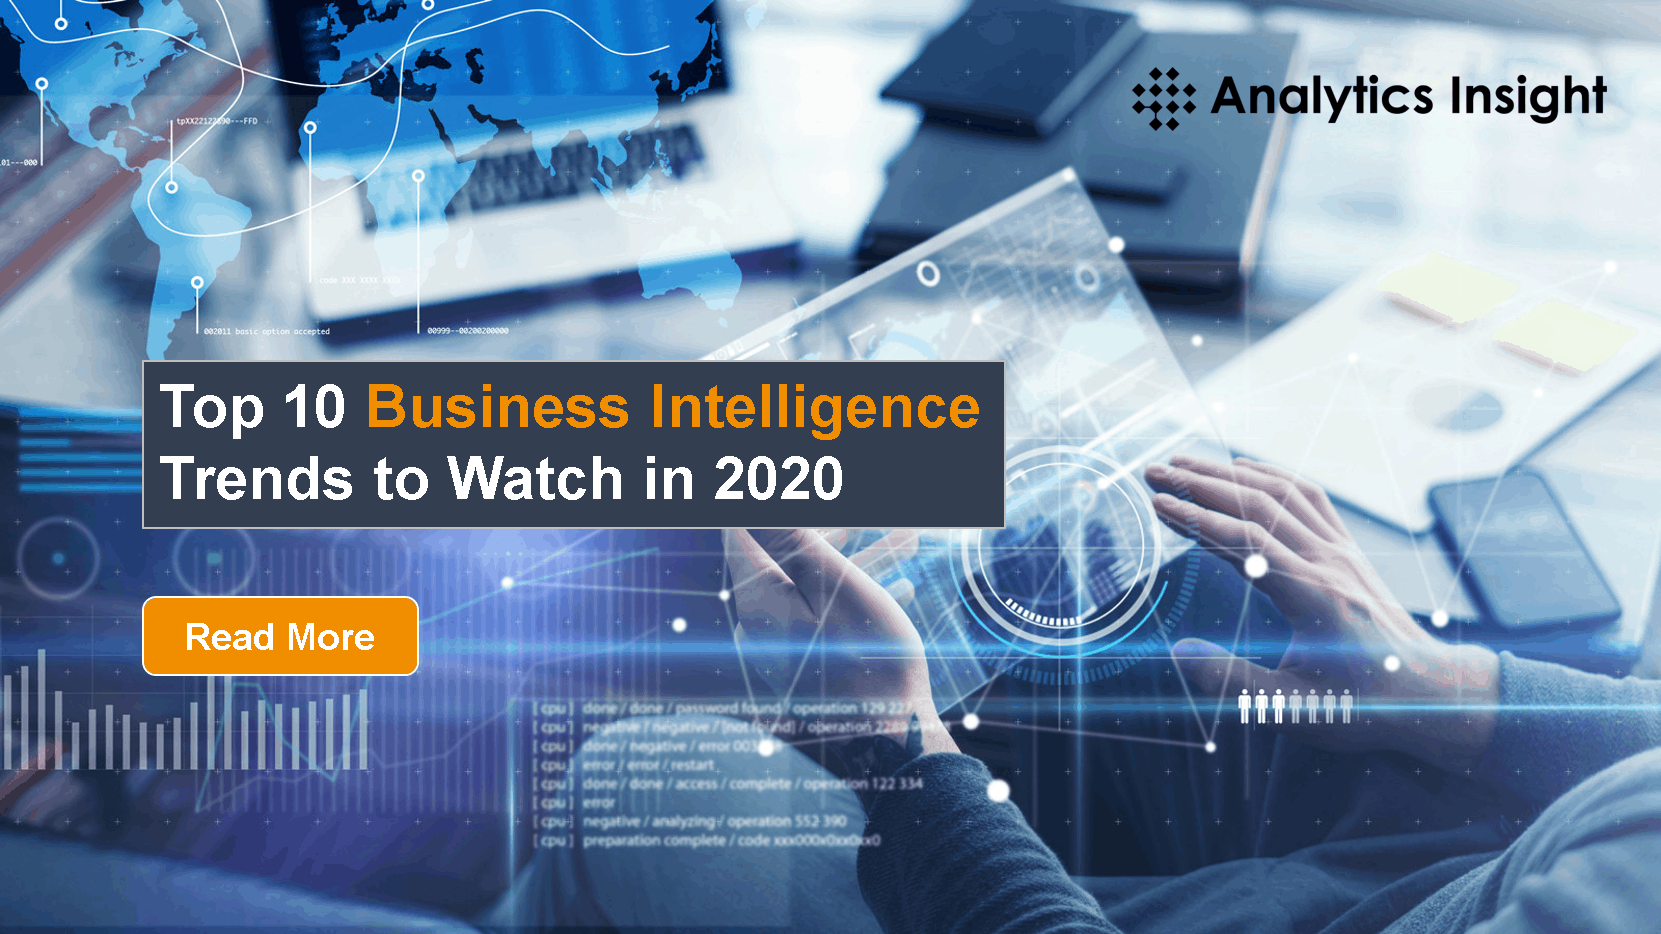 Top 10 Business Intelligence Trends